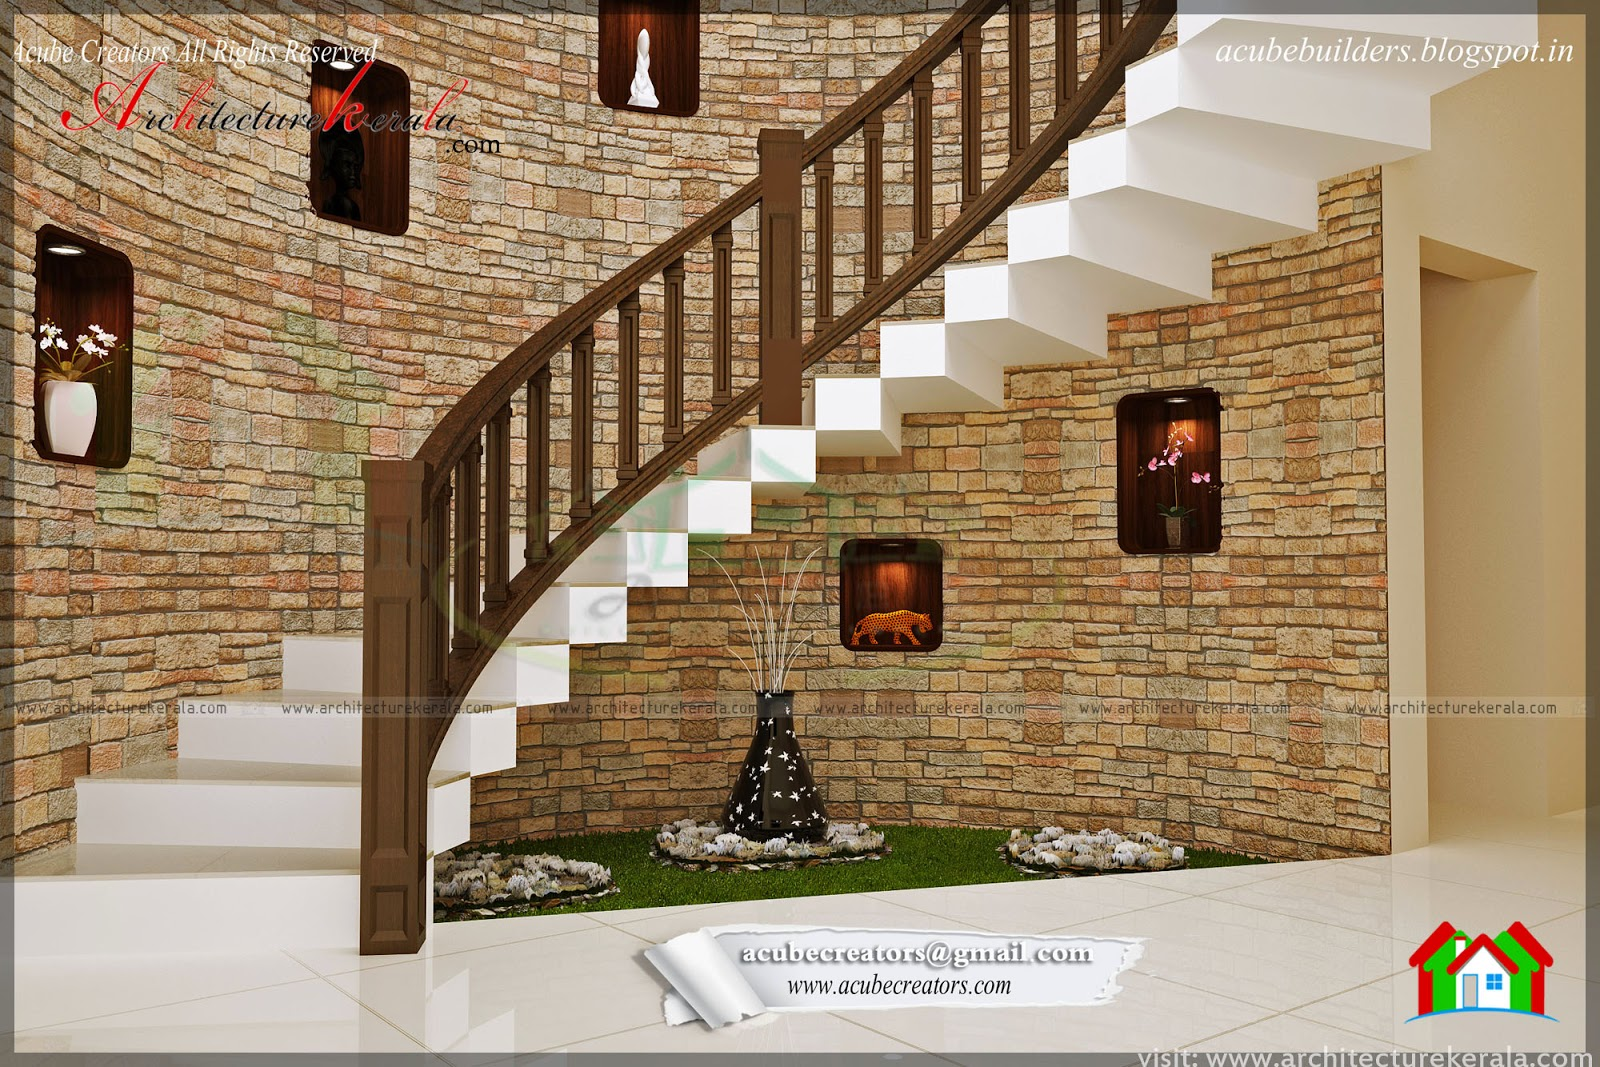 Beautiful stair interior design architecture kerala for Different interior designs of houses